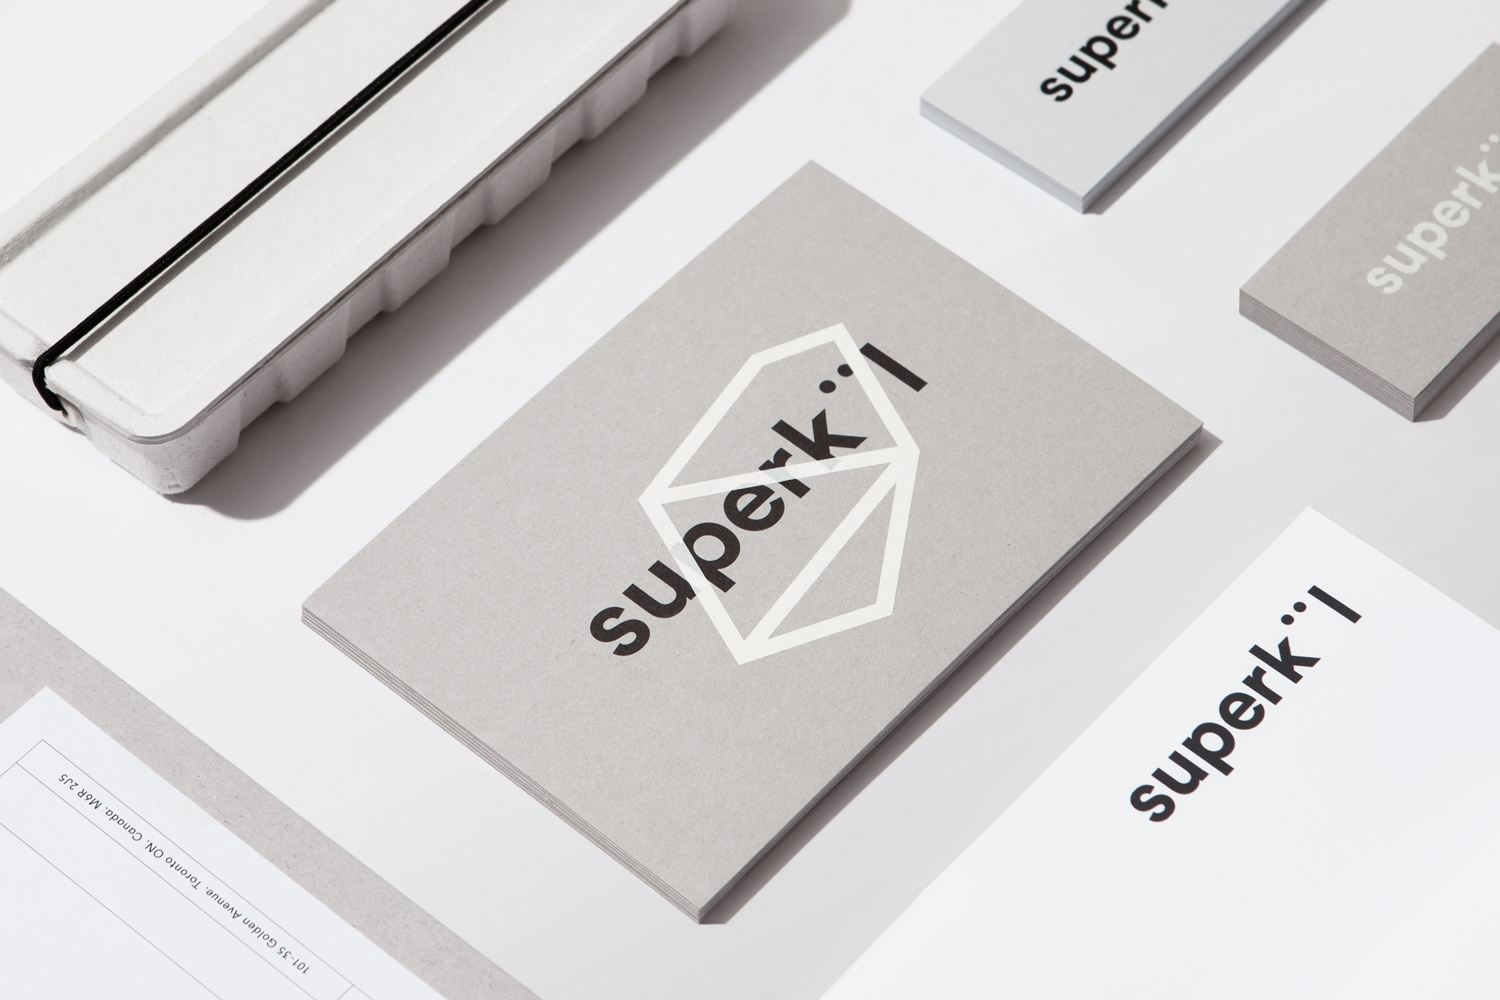 Brand identity and note card by Toronto-based graphic design studio Blok for Canadian architecture firm Superkül